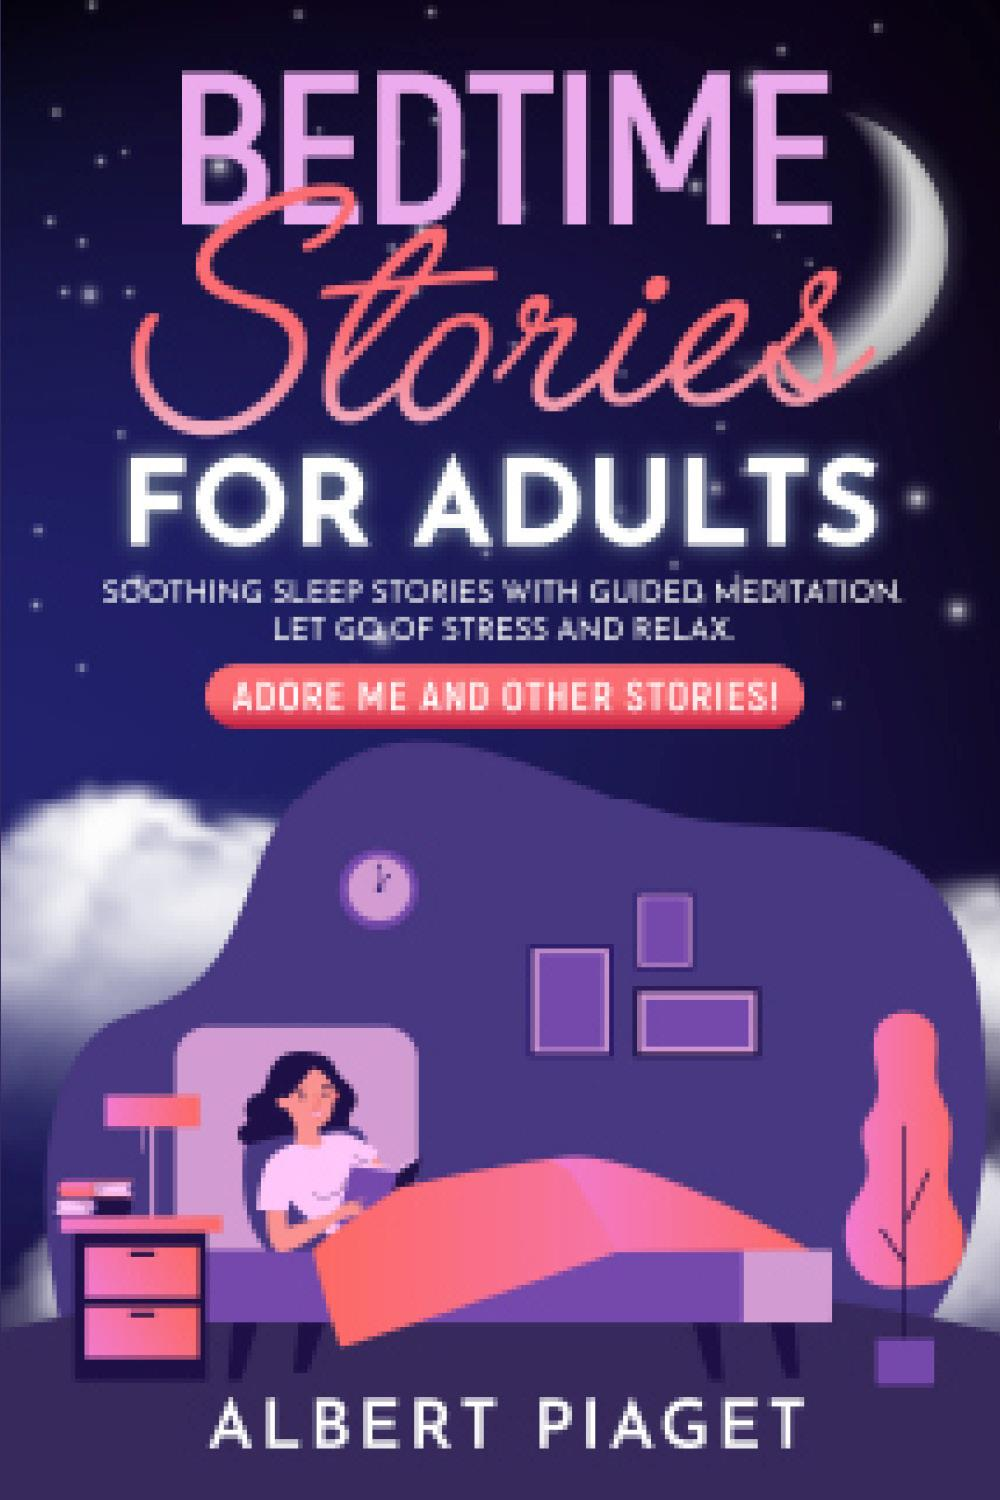 Bedtime Stories for Adults. Soothing Sleep Stories with Guided Meditation